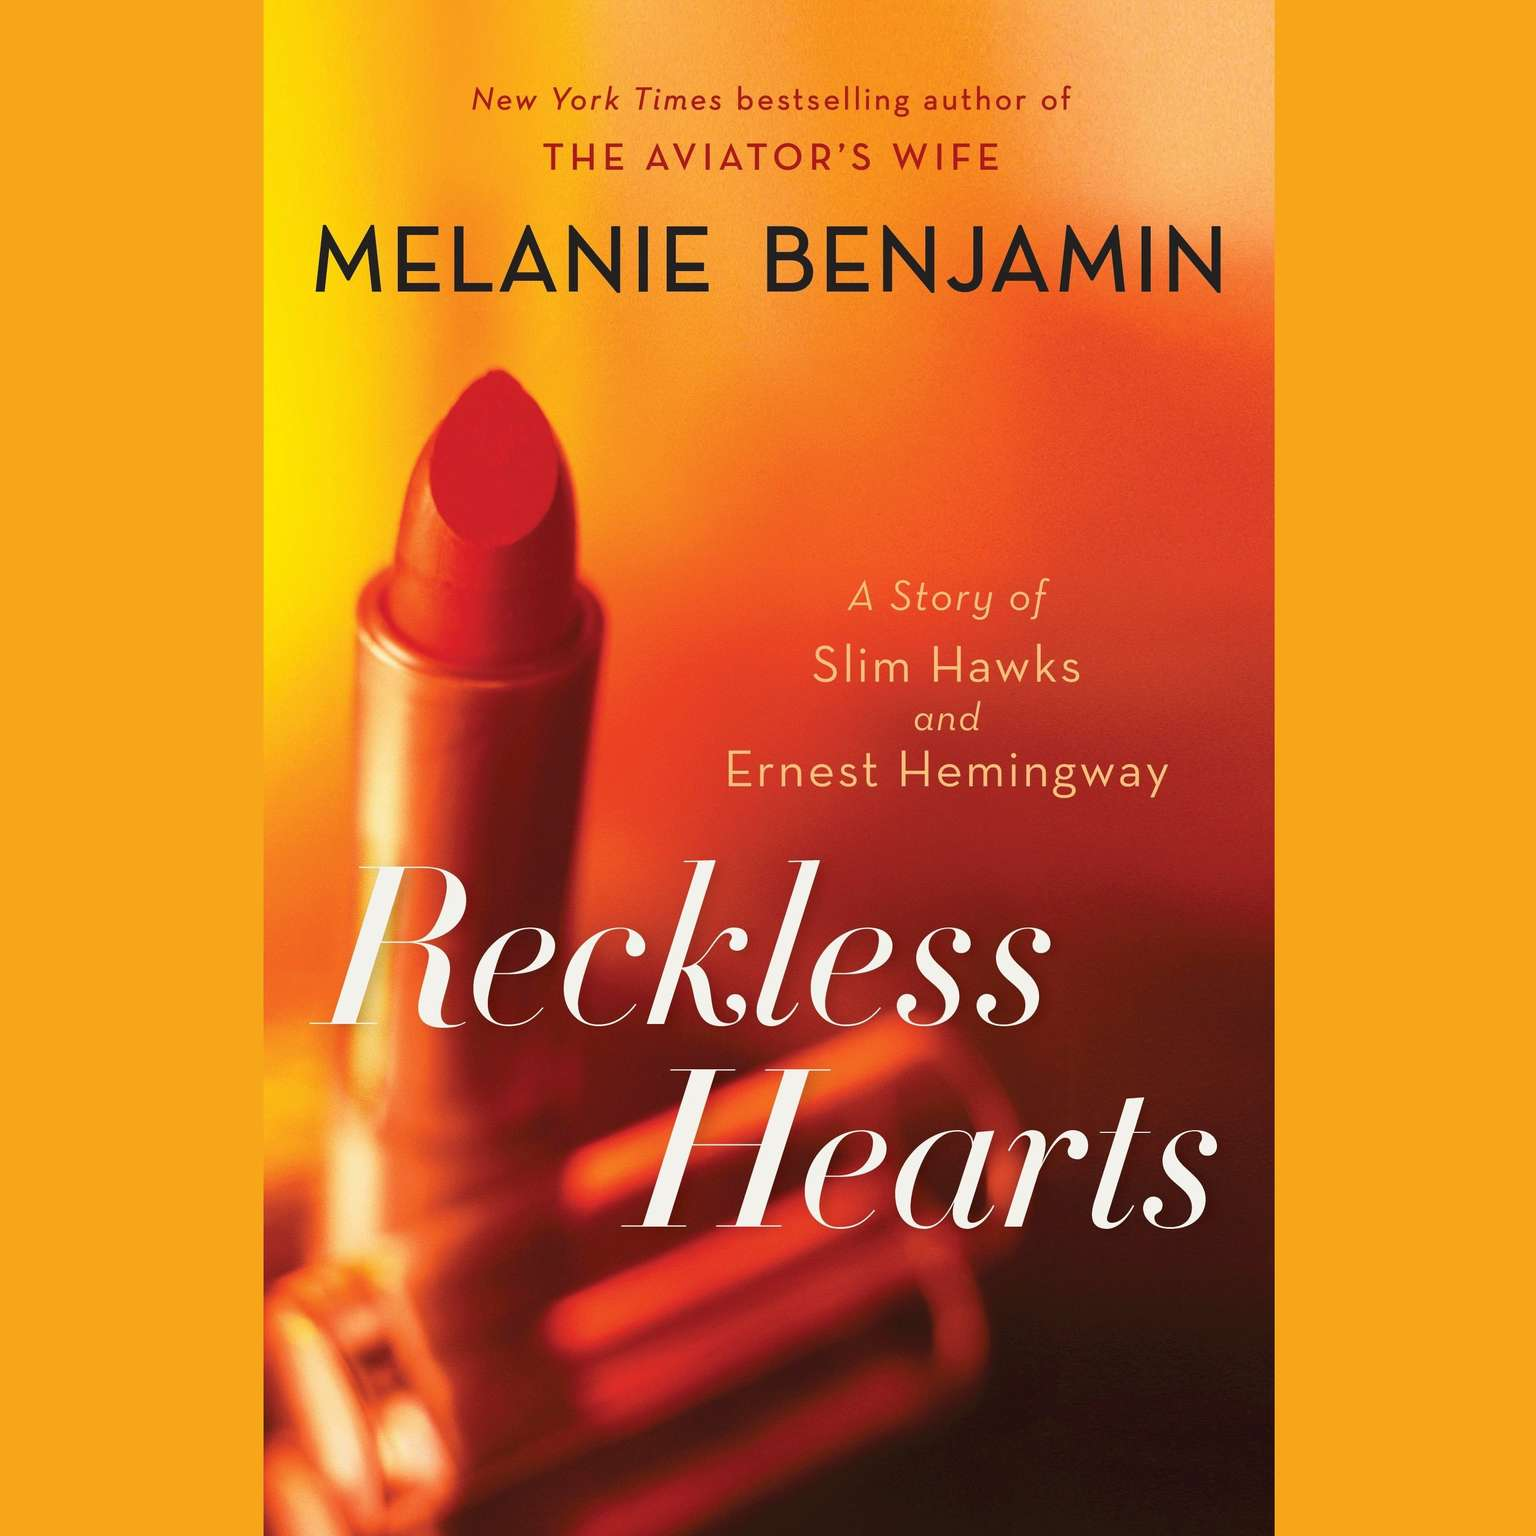 Printable Reckless Hearts (Short Story): A Story of Slim Hawks and Ernest Hemingway Audiobook Cover Art